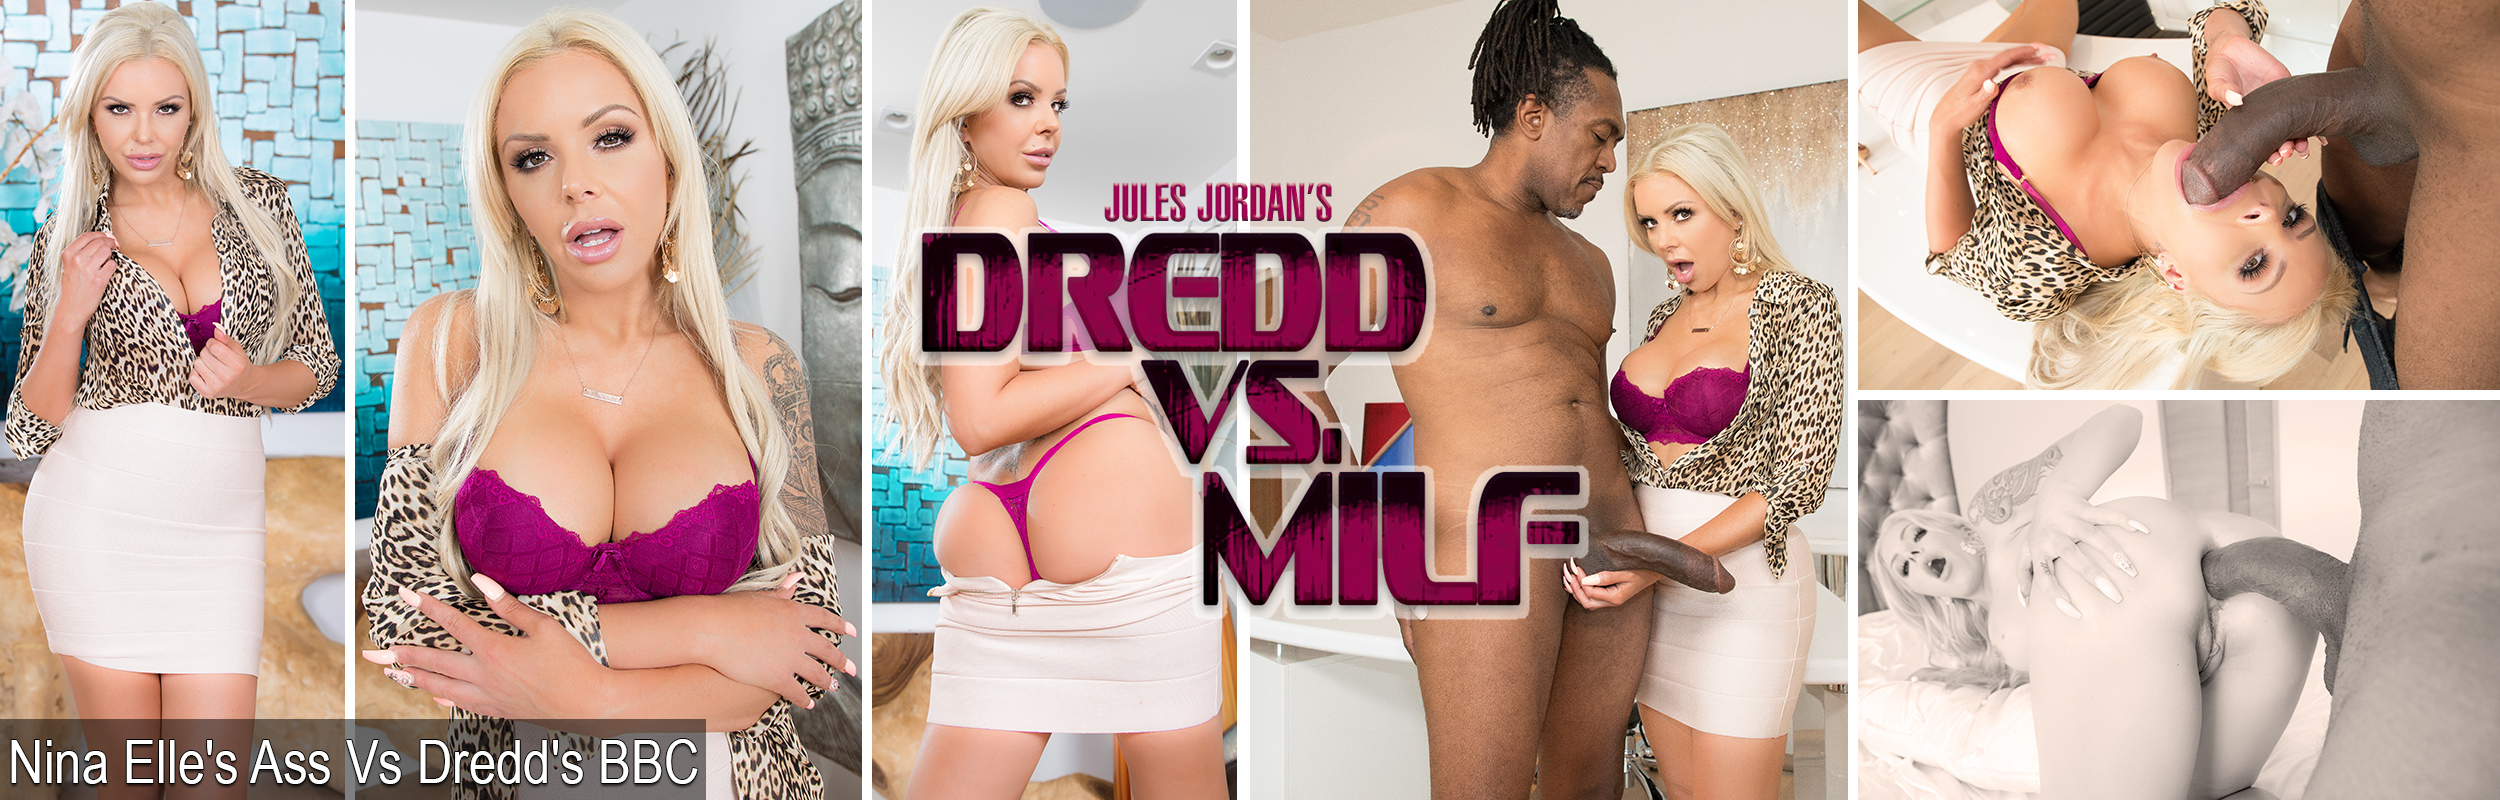 Nina Elle's Ass Vs Dredd's BBC